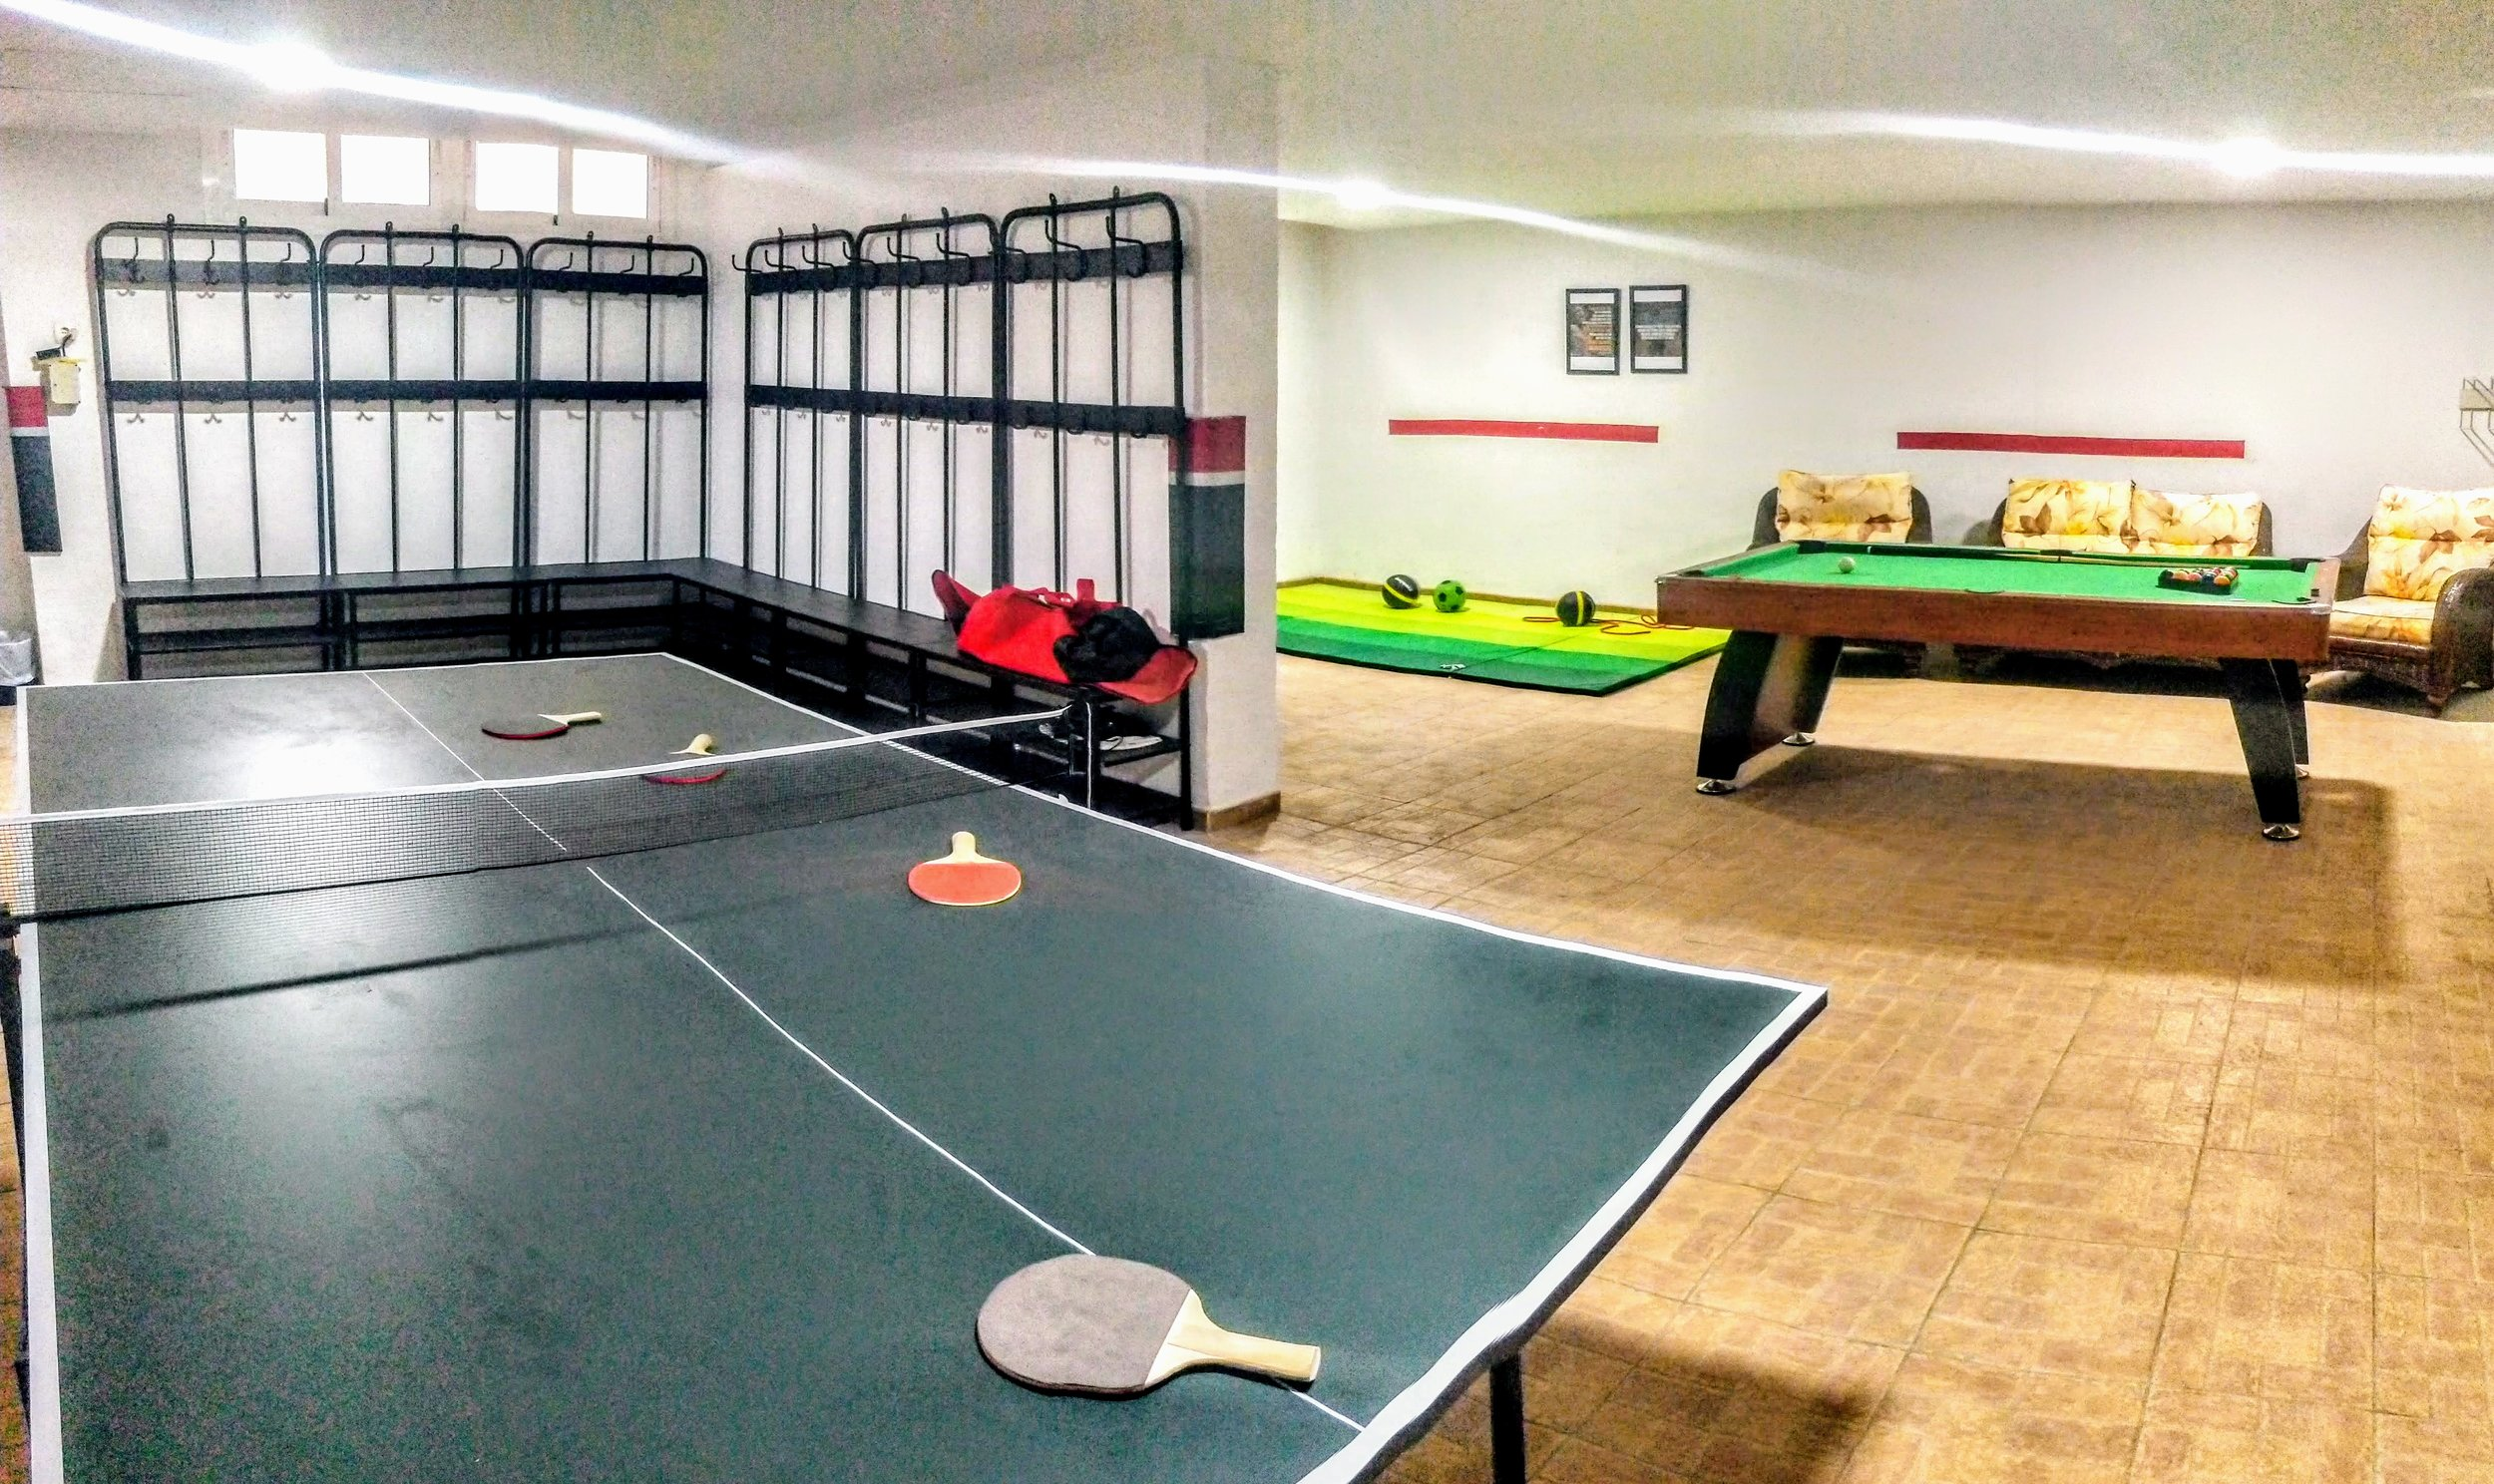 Table tennis and pool tables are available